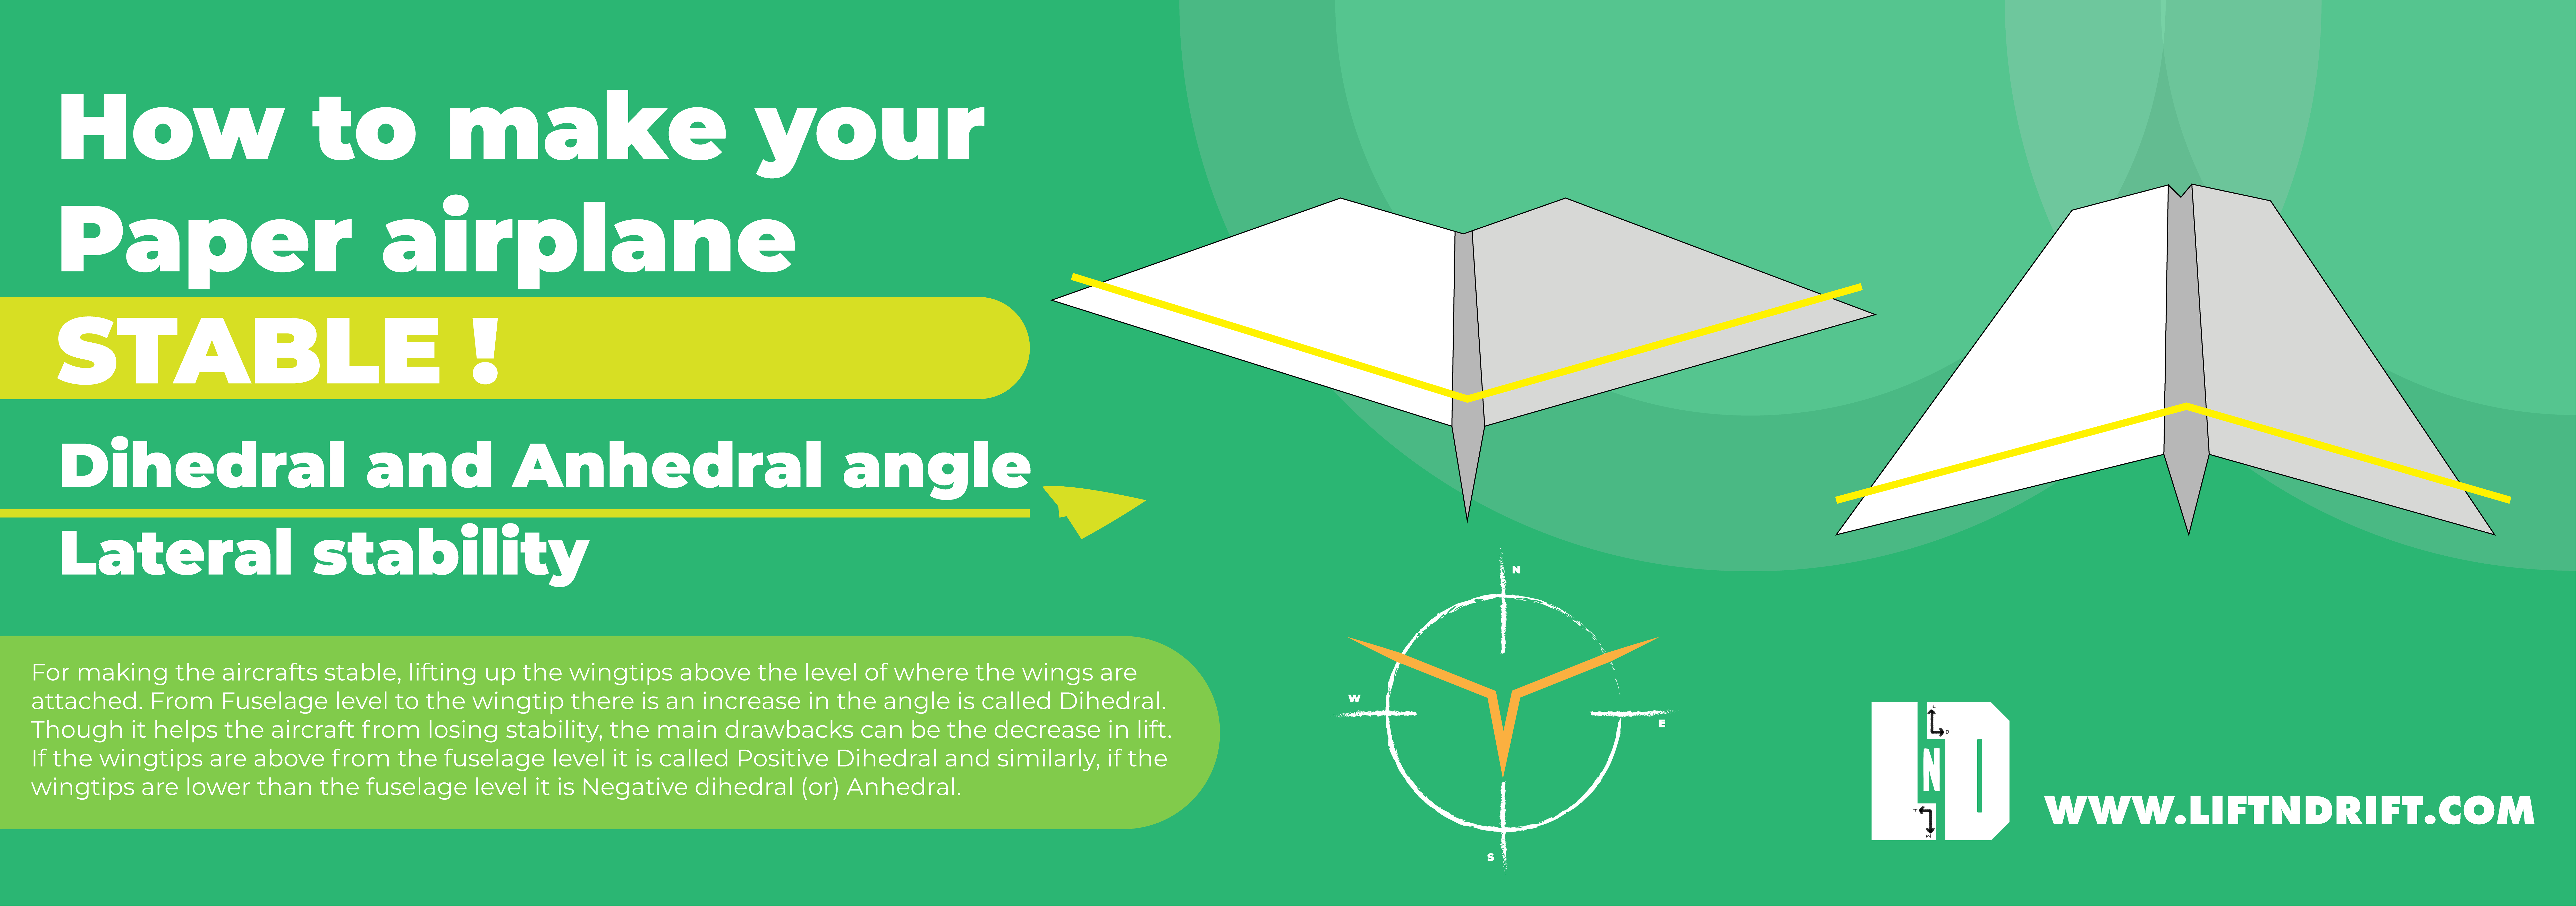 Dihedral vs Anhedral | Lateral stability in Paper airplane flight makes aloft